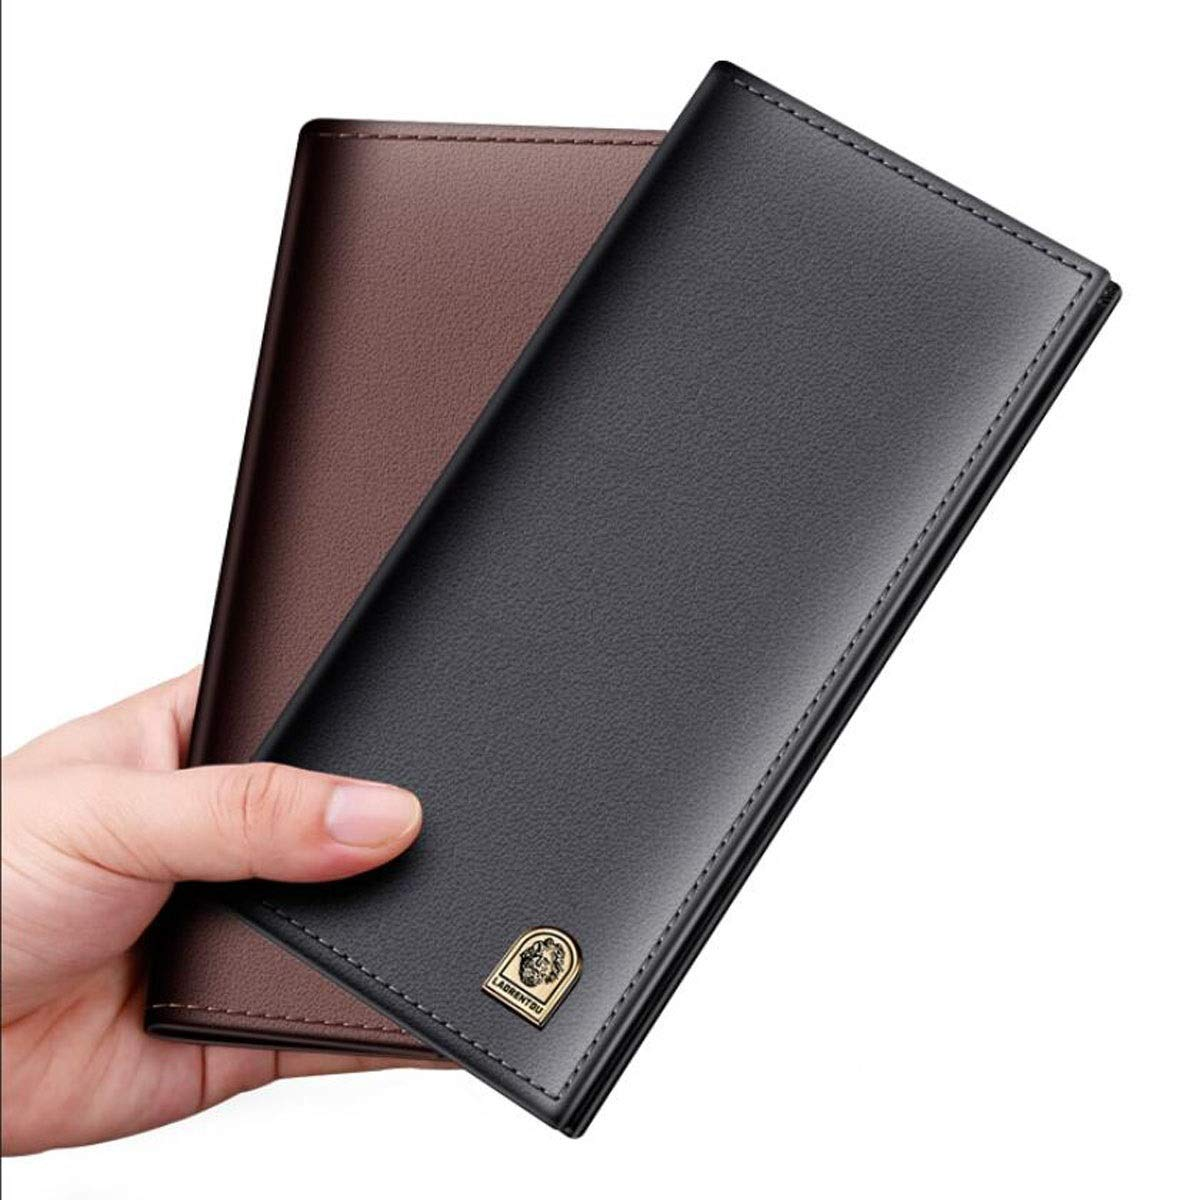 Color Size 19 1.8 9.3 Kalmar RFID Travel Wallet Suitable for Mens Long Casual Fashion Business Young Students Ultra-Thin Leather Wallet Black cm Stealth Mode Blocking Leather Wallet